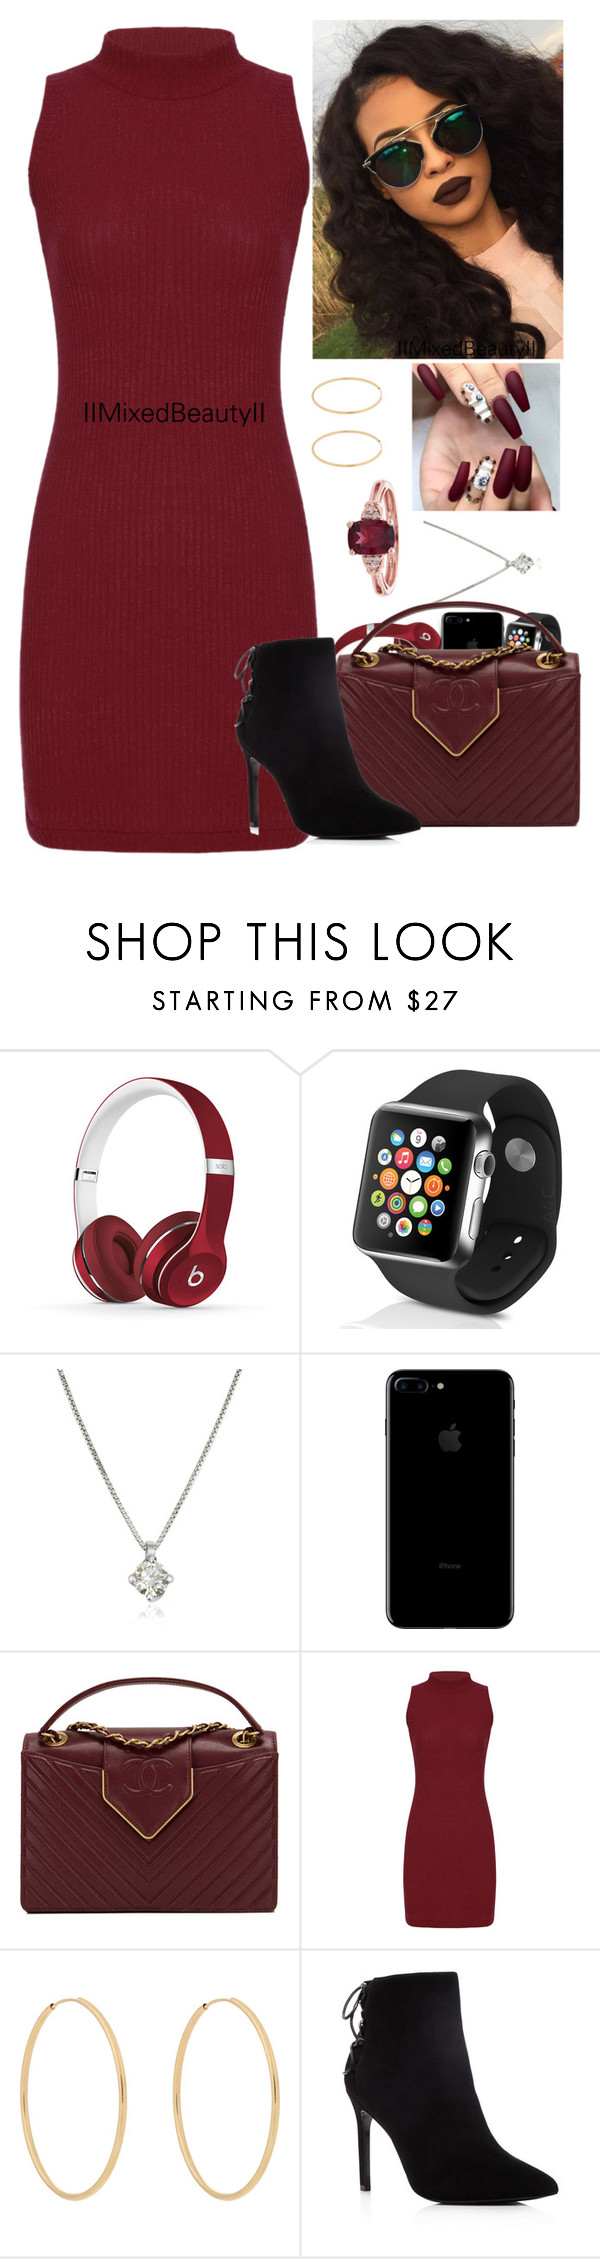 """""""Untitled #336"""" by iimixedbeautyii ❤ liked on Polyvore featuring Beats by Dr. Dre, Apple, Forzieri, Chanel, Loren Stewart and Charles David"""